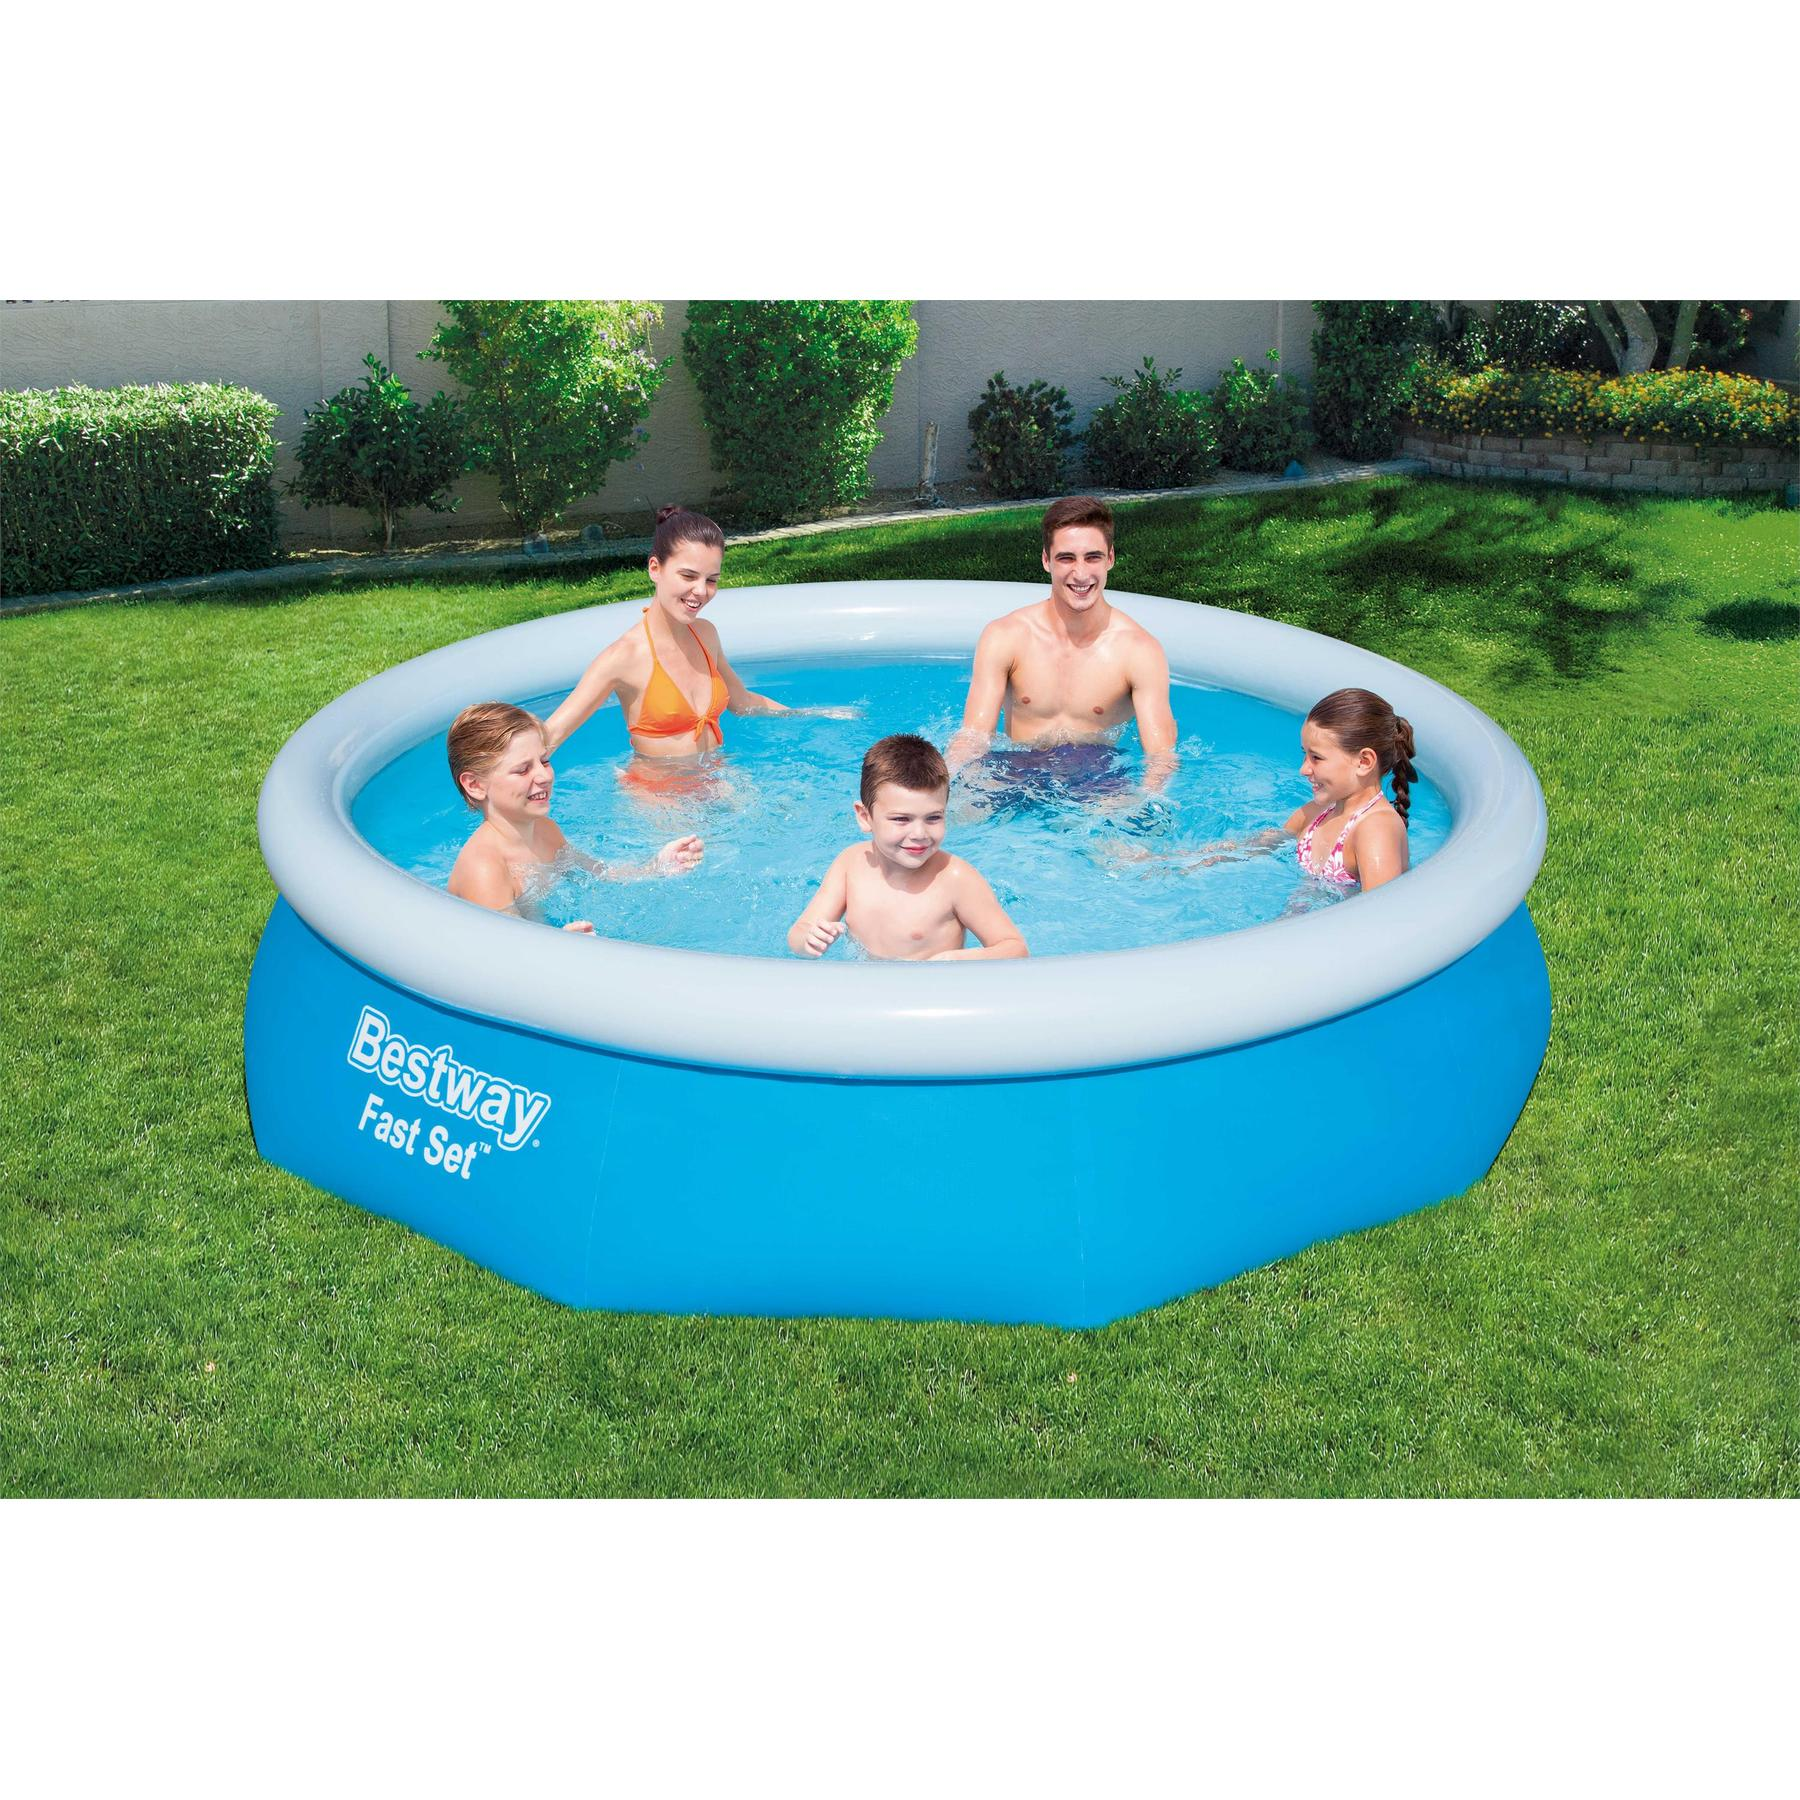 Round Pool Inflatable Children водораспорный Fast Set 305x76 Cm, 3638 L, Bestway, Item No. 57266